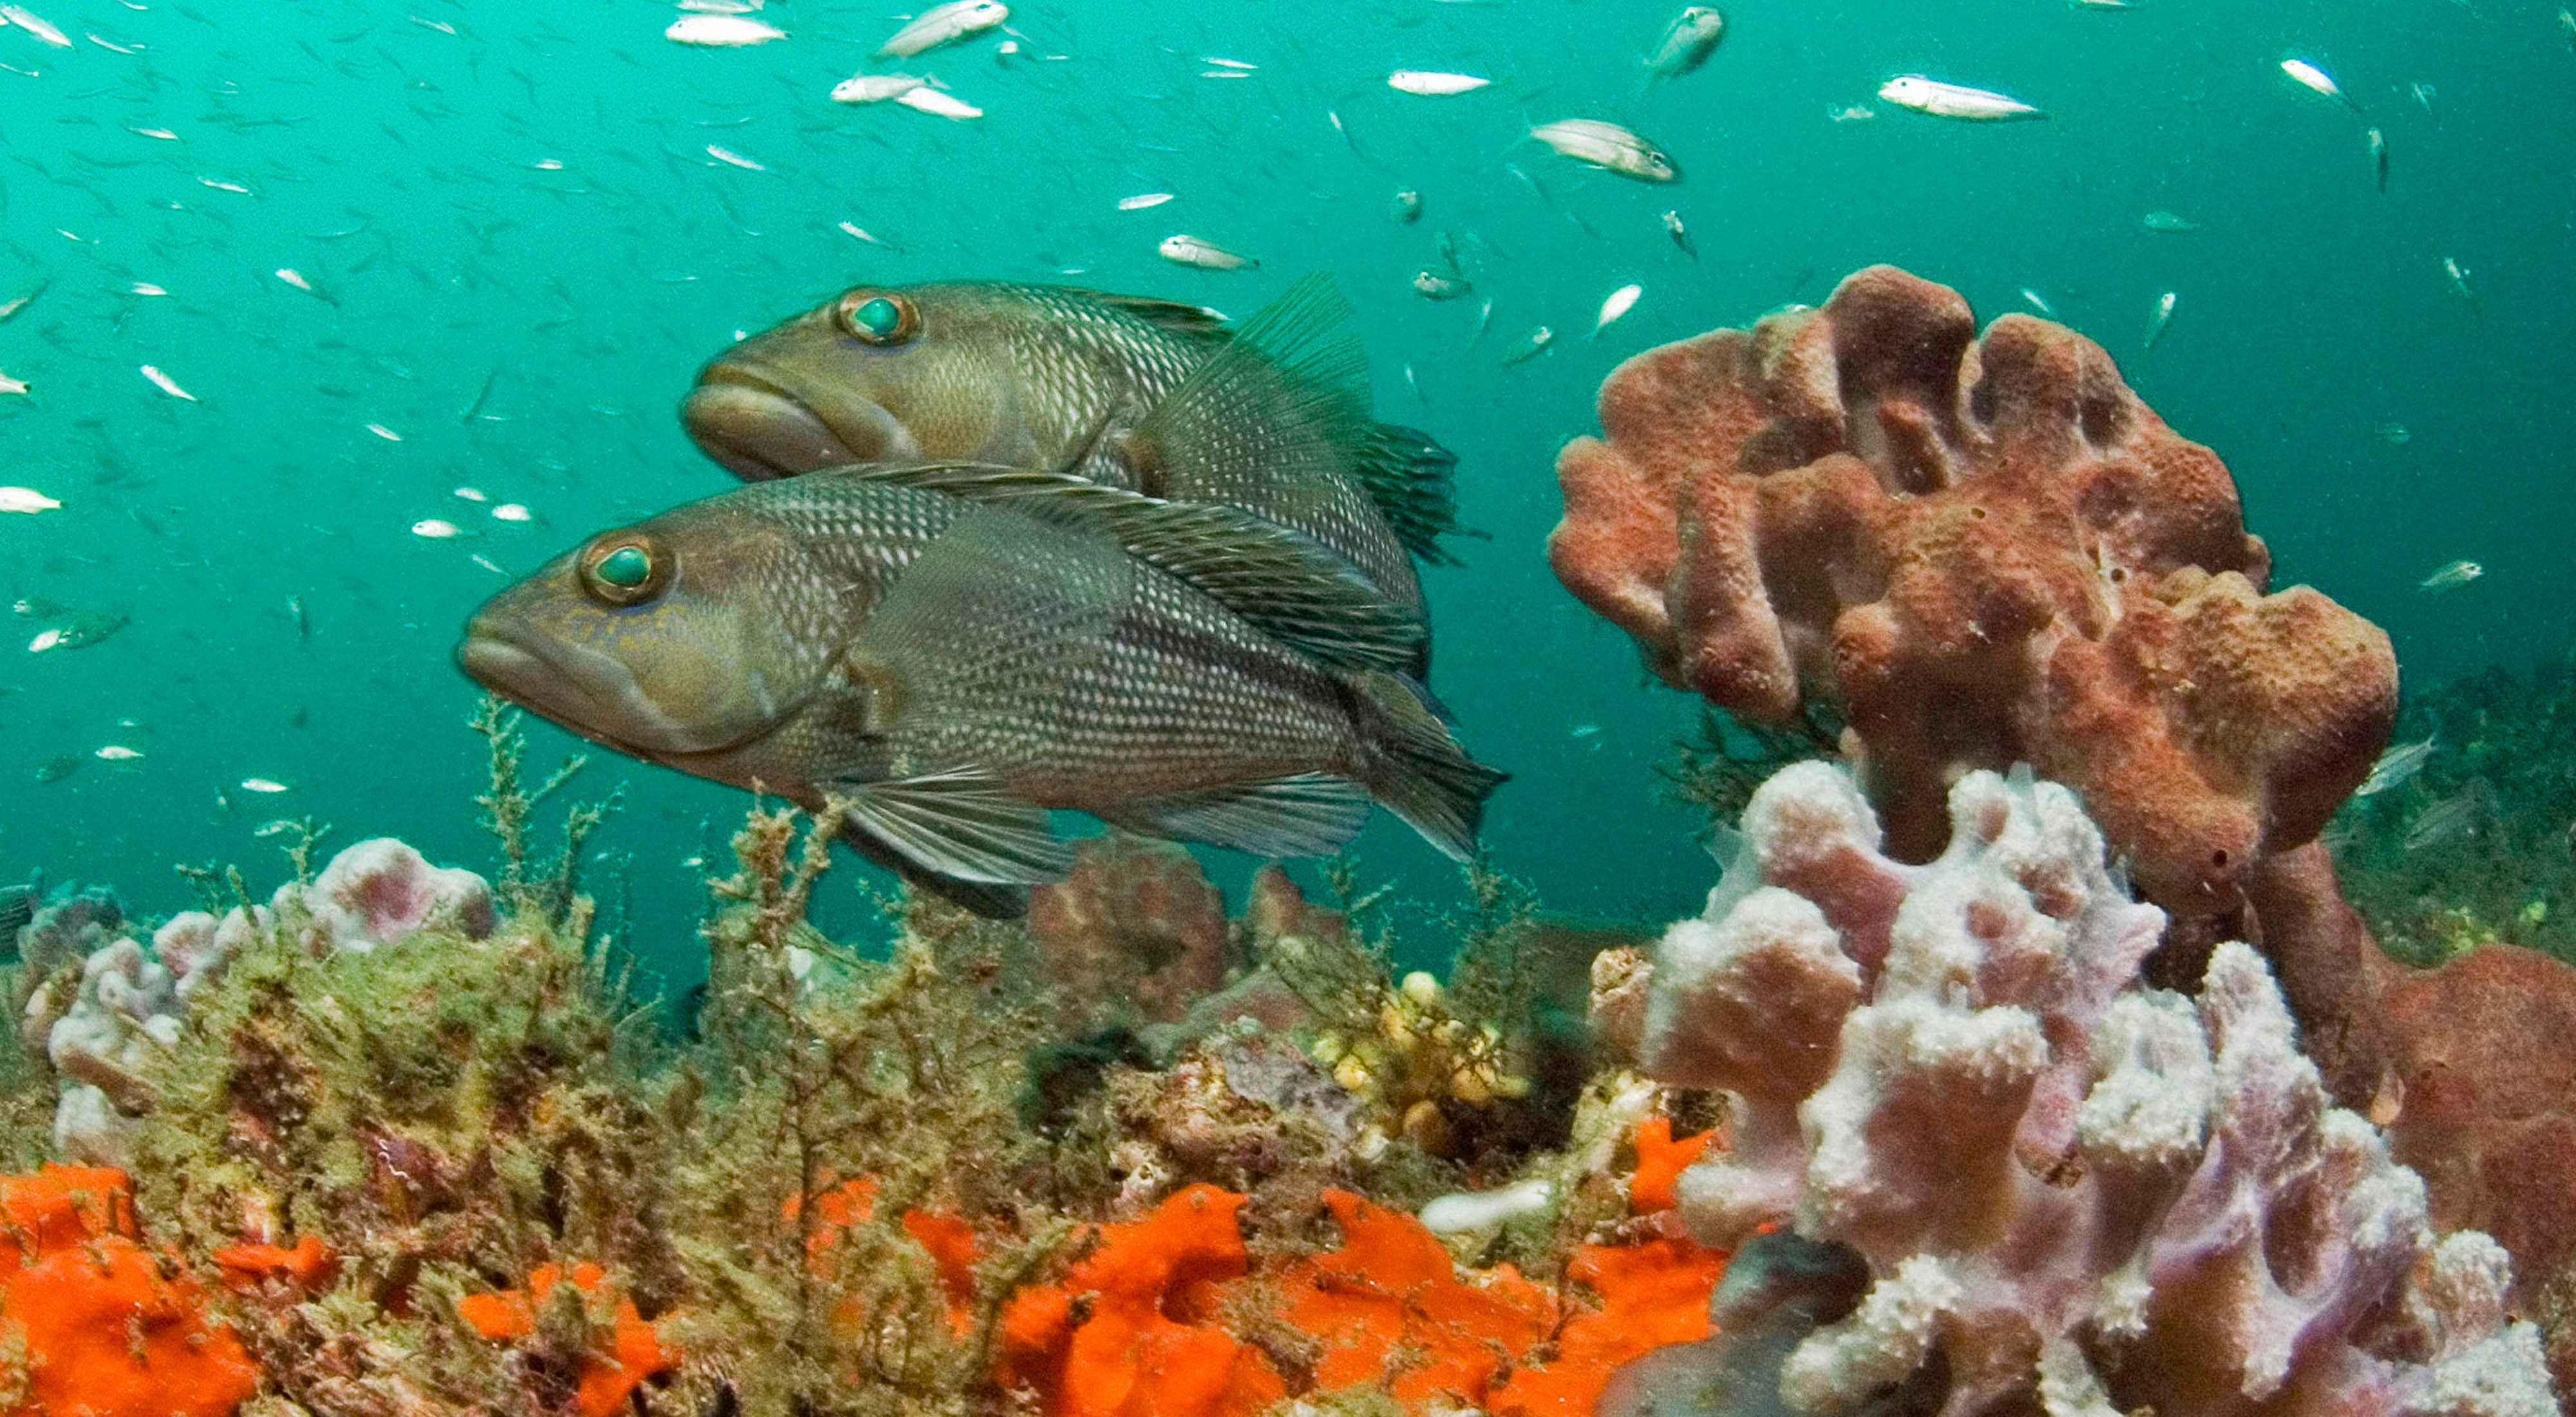 Two black sea bass swimming over coral at Grays Reef National Marine Sanctuary off the coast of Georgia